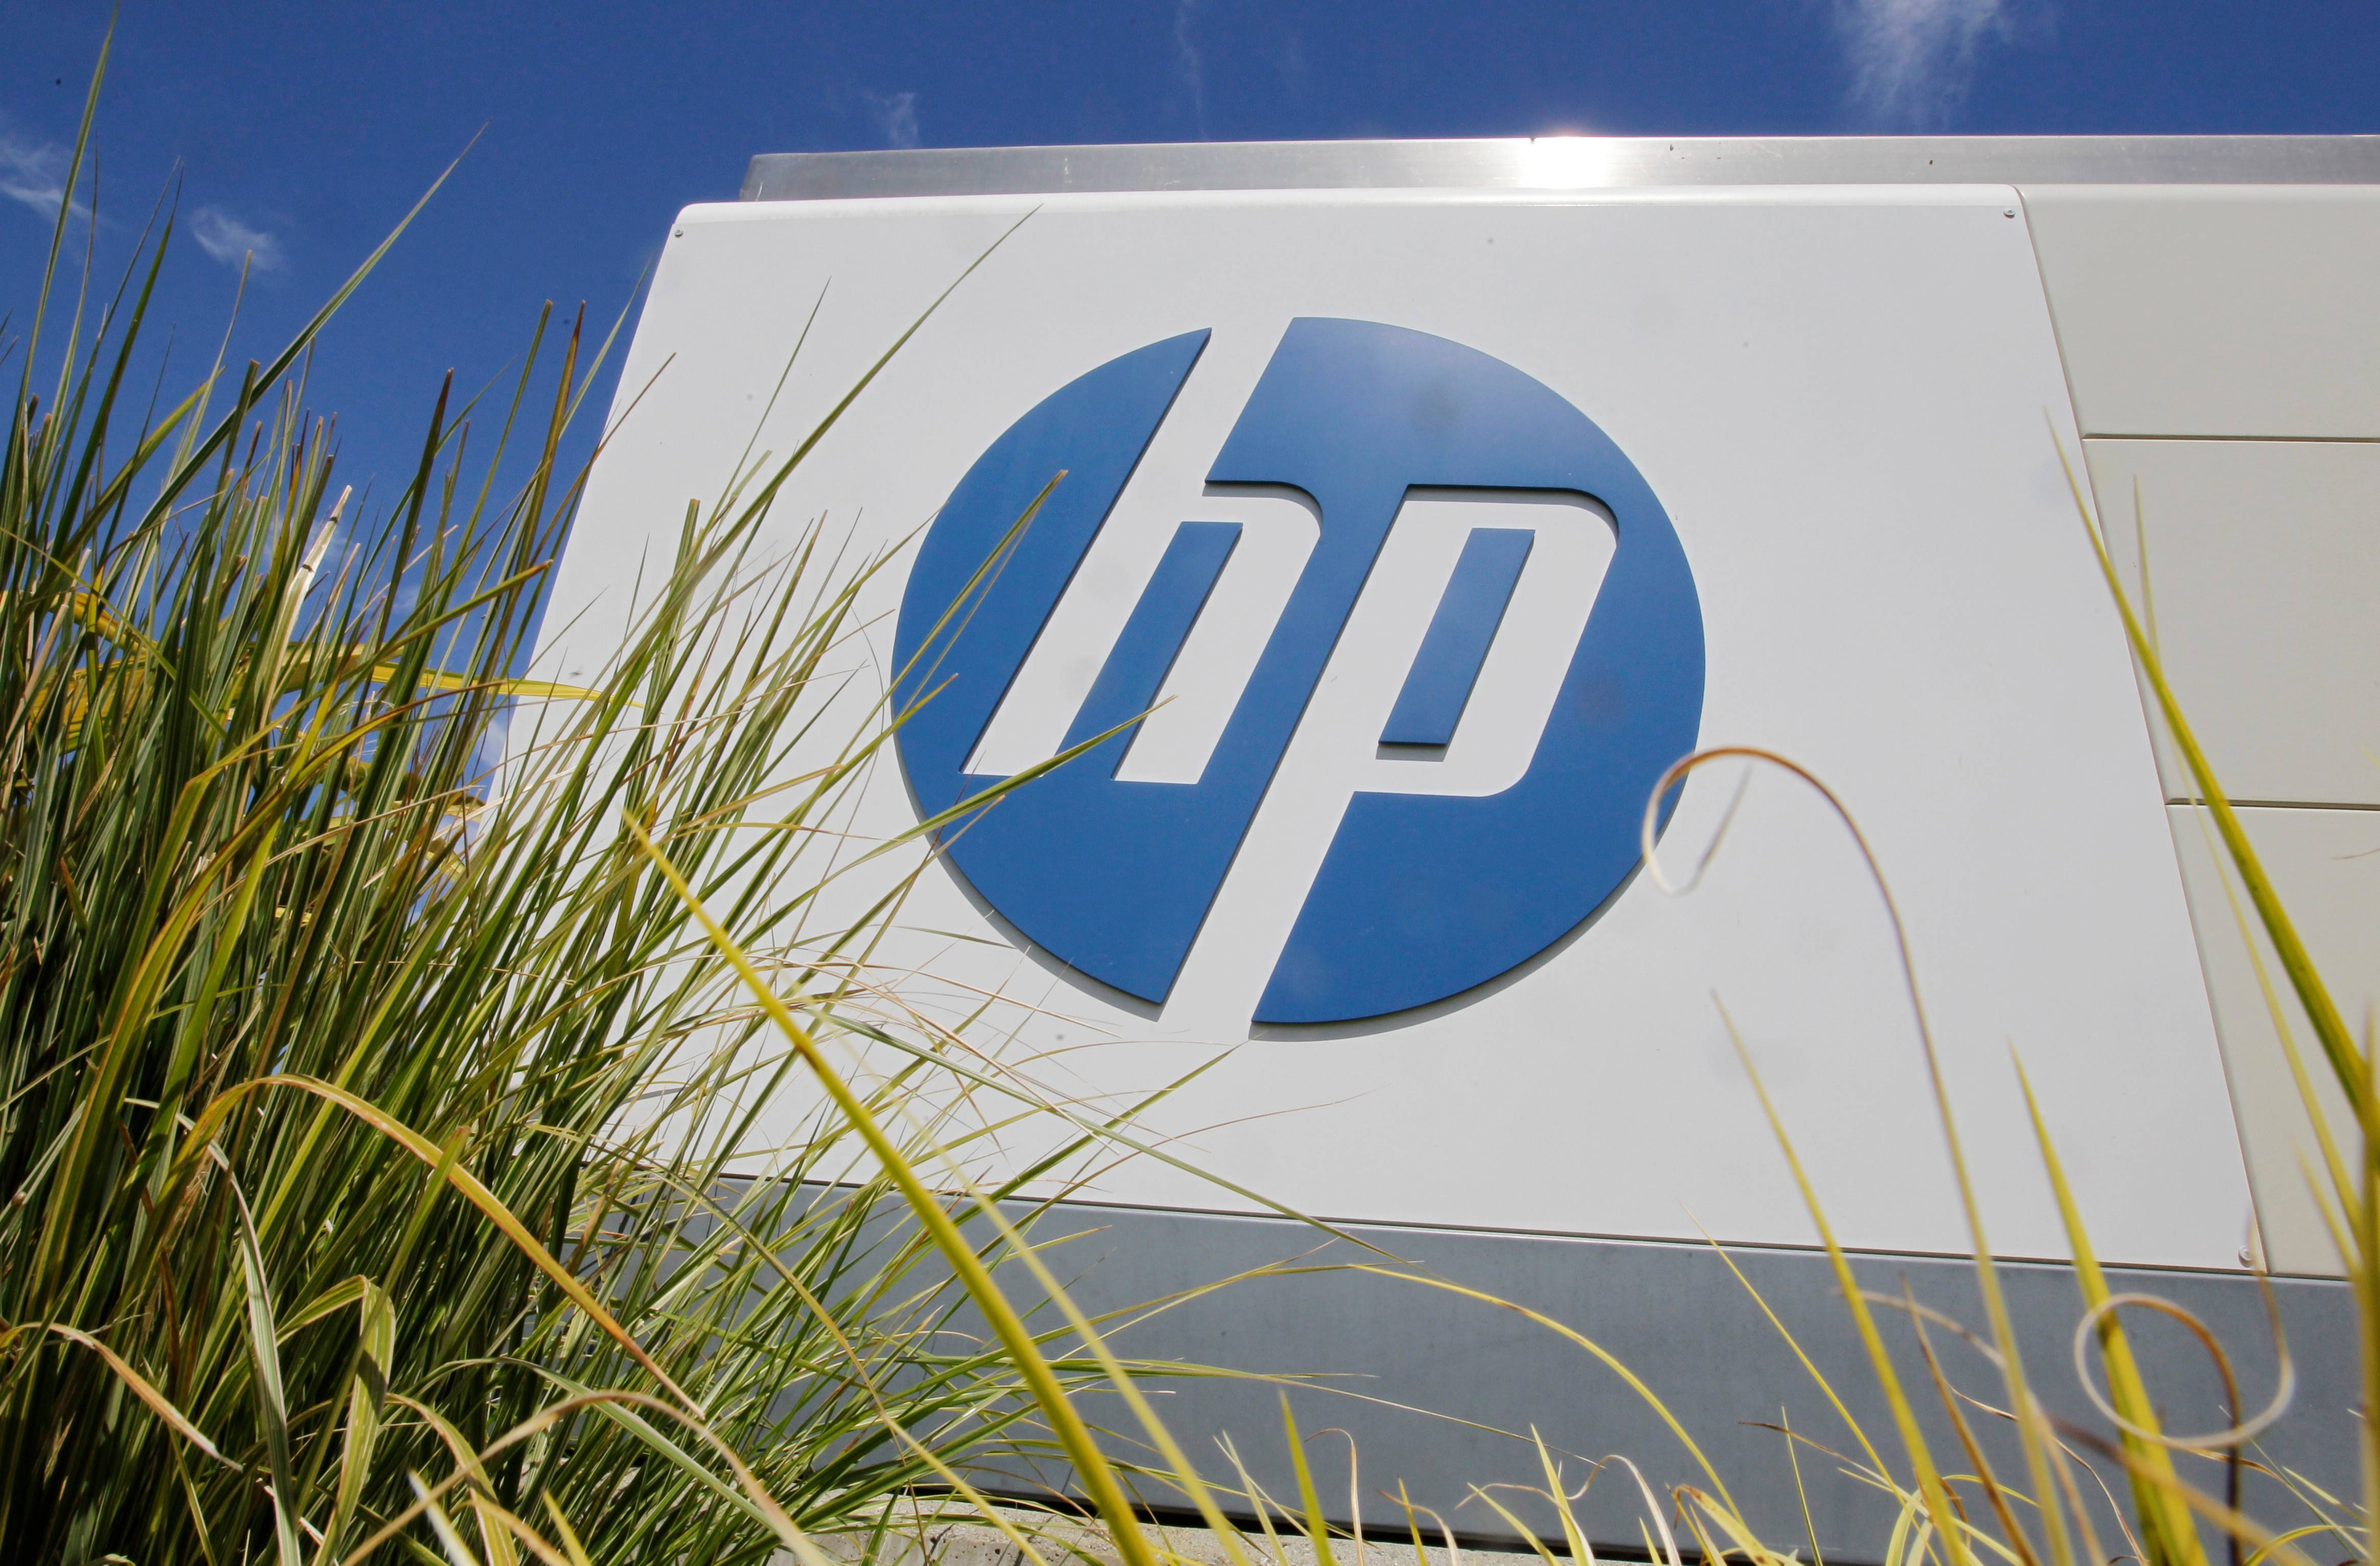 Hewlett-Packard Co., the iconic maker of personal computers and printers, reportedly plans to split itself into two separate companies by spinning off its technology services business.